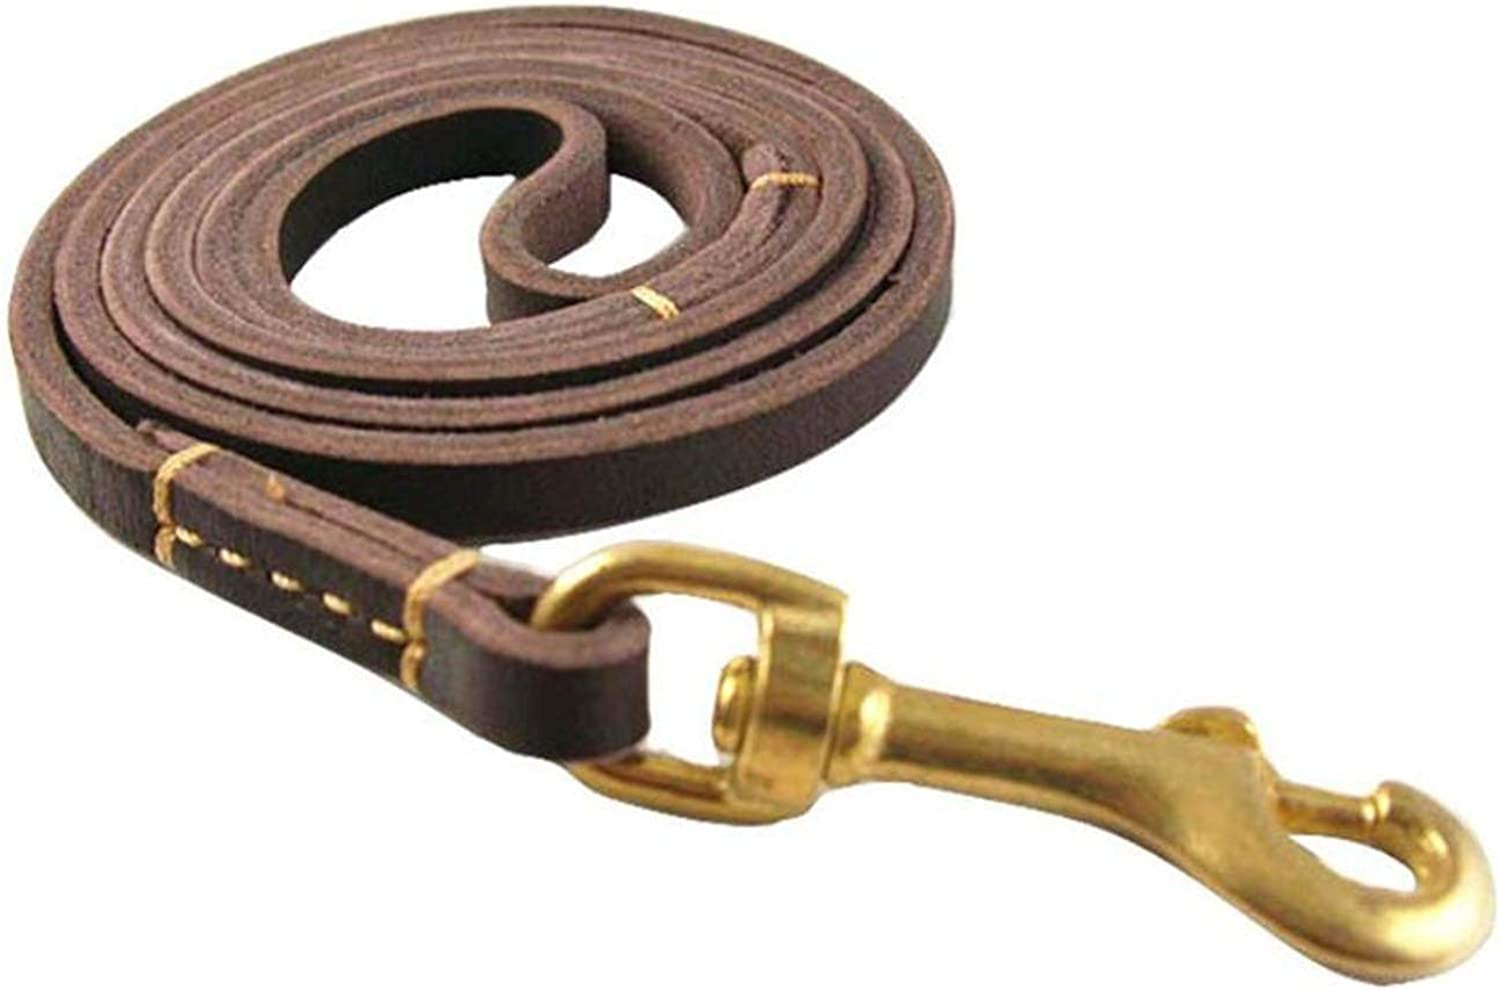 Dog Leather Leash, Dog Training Leads Rope Pet Dog Cat Puppy Tracking Walking Long Training Chain, Wine Red Dog Training Leash (colore: Dark Brown)